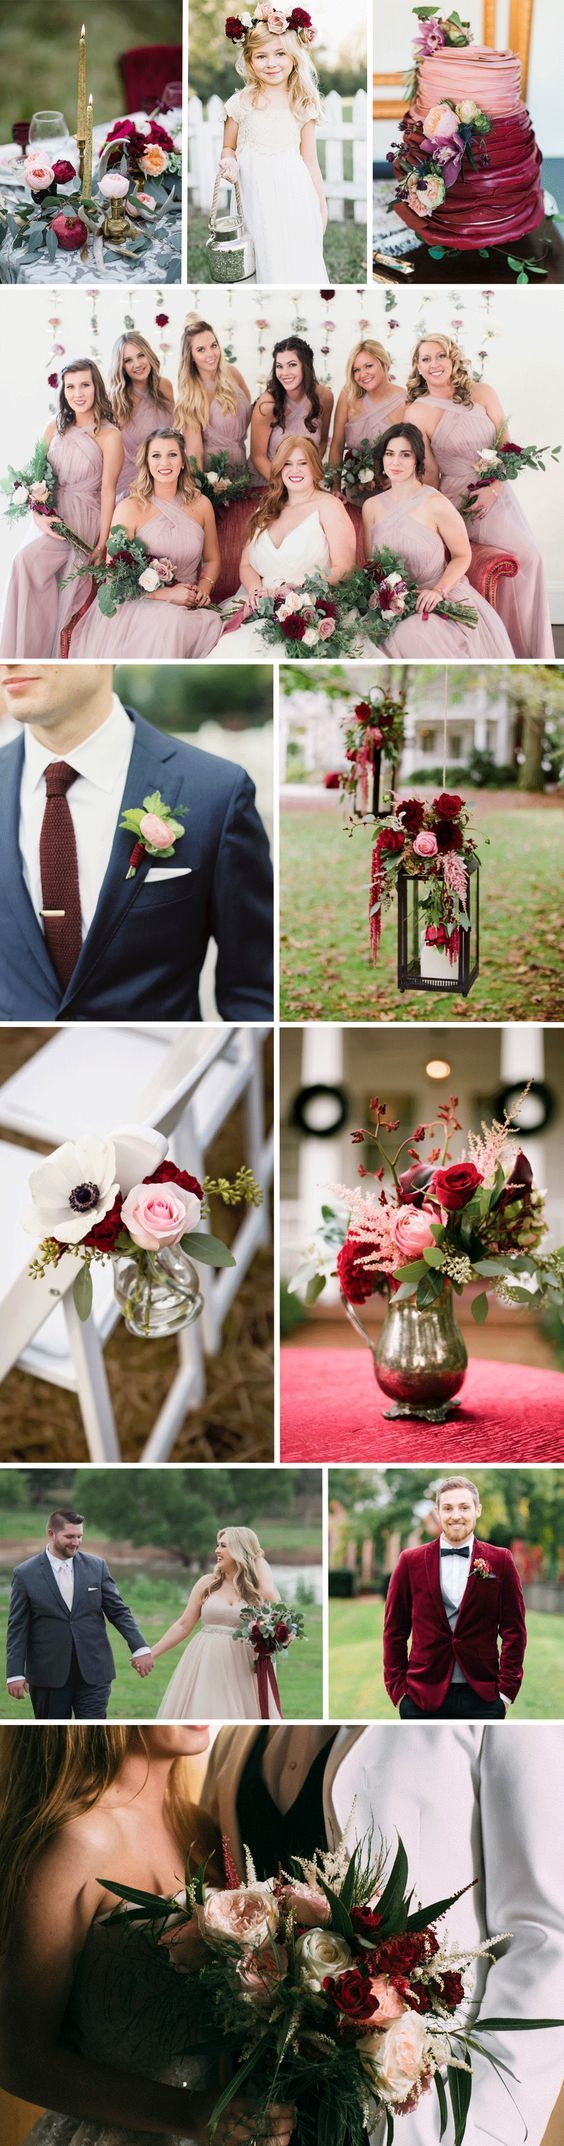 Burgundy u Blush Wedding Ideas in   Wedding  Pinterest